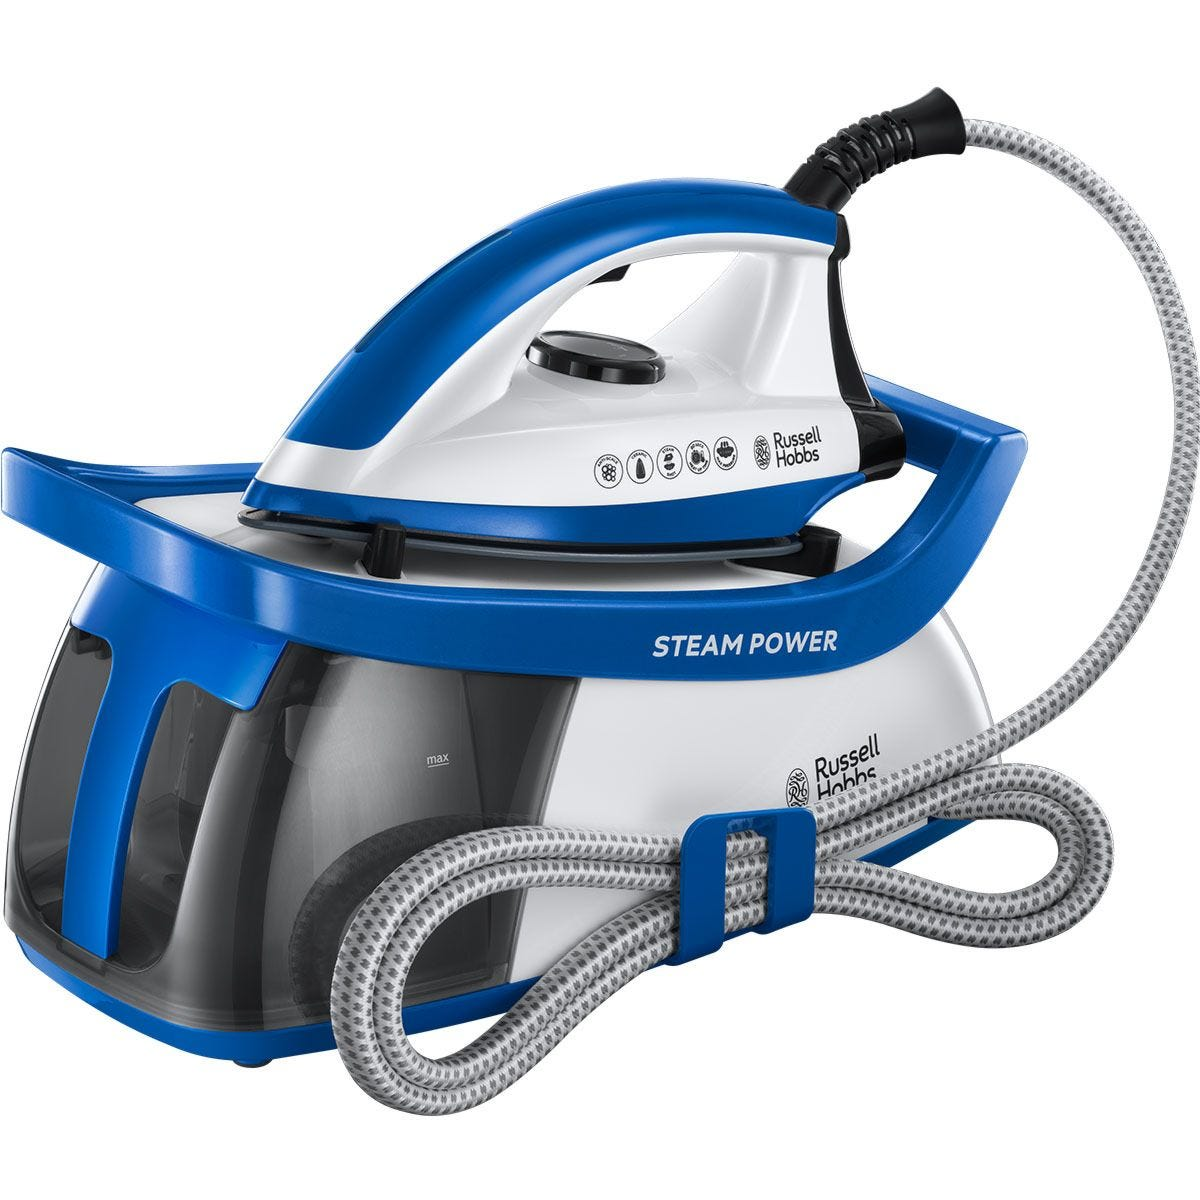 Russell Hobbs 24430 SteamPower Series 2 1.3L Steam Generator - Blue and White